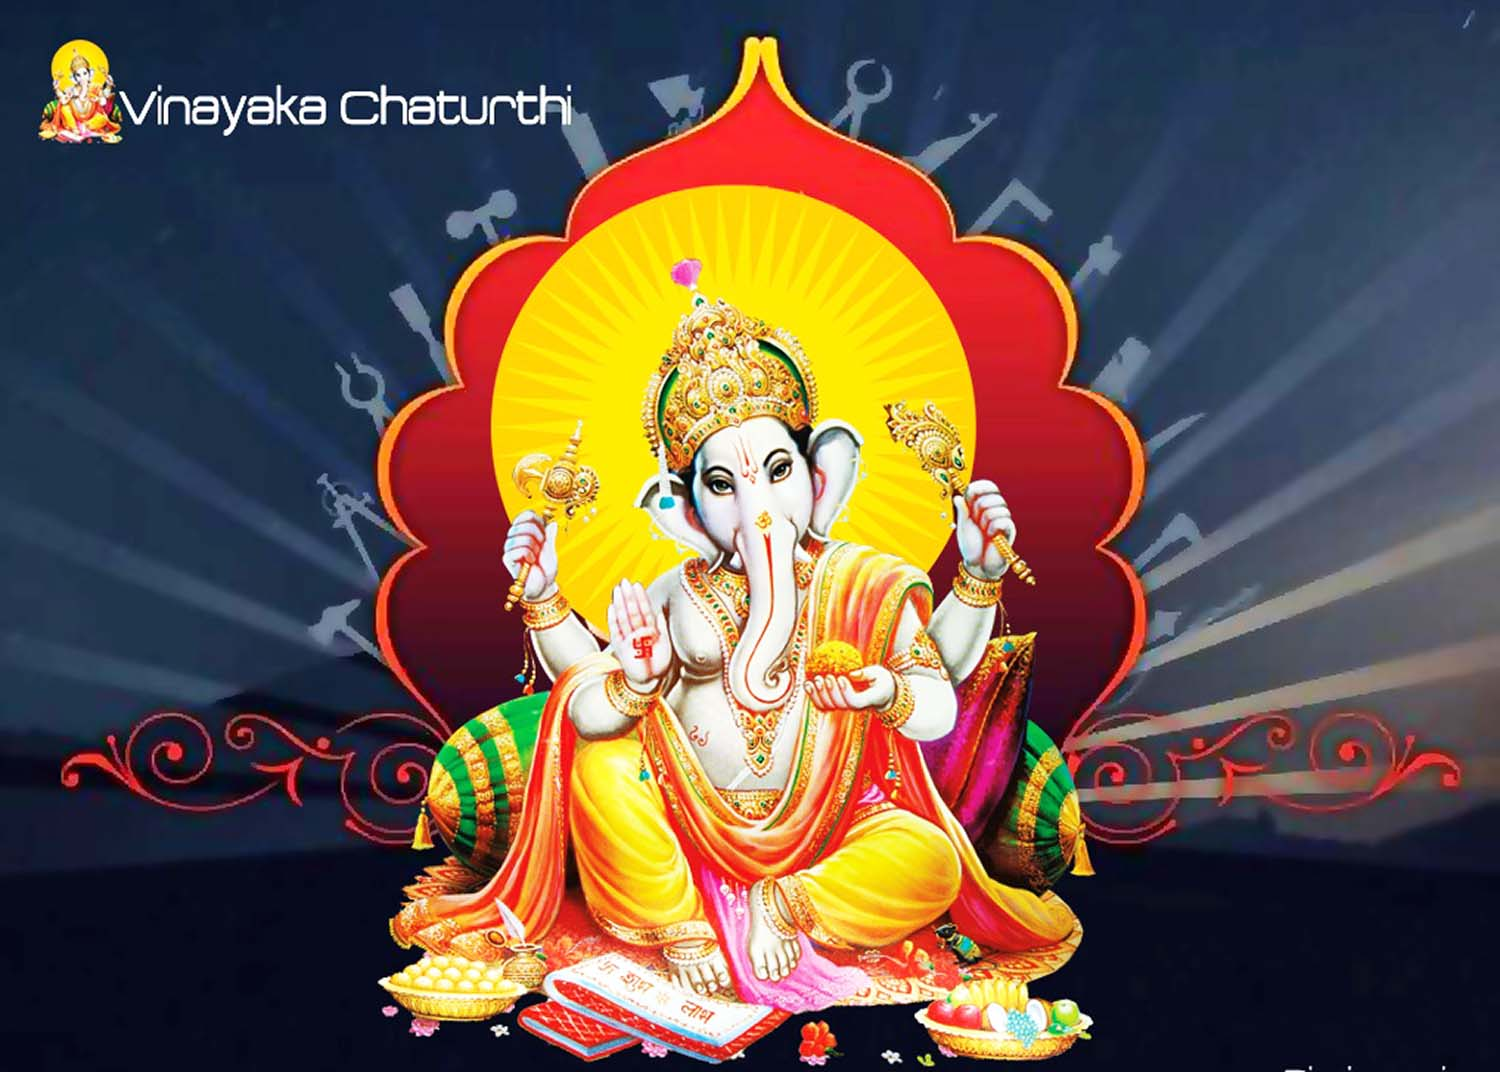 Lord Ganesha with a pillow